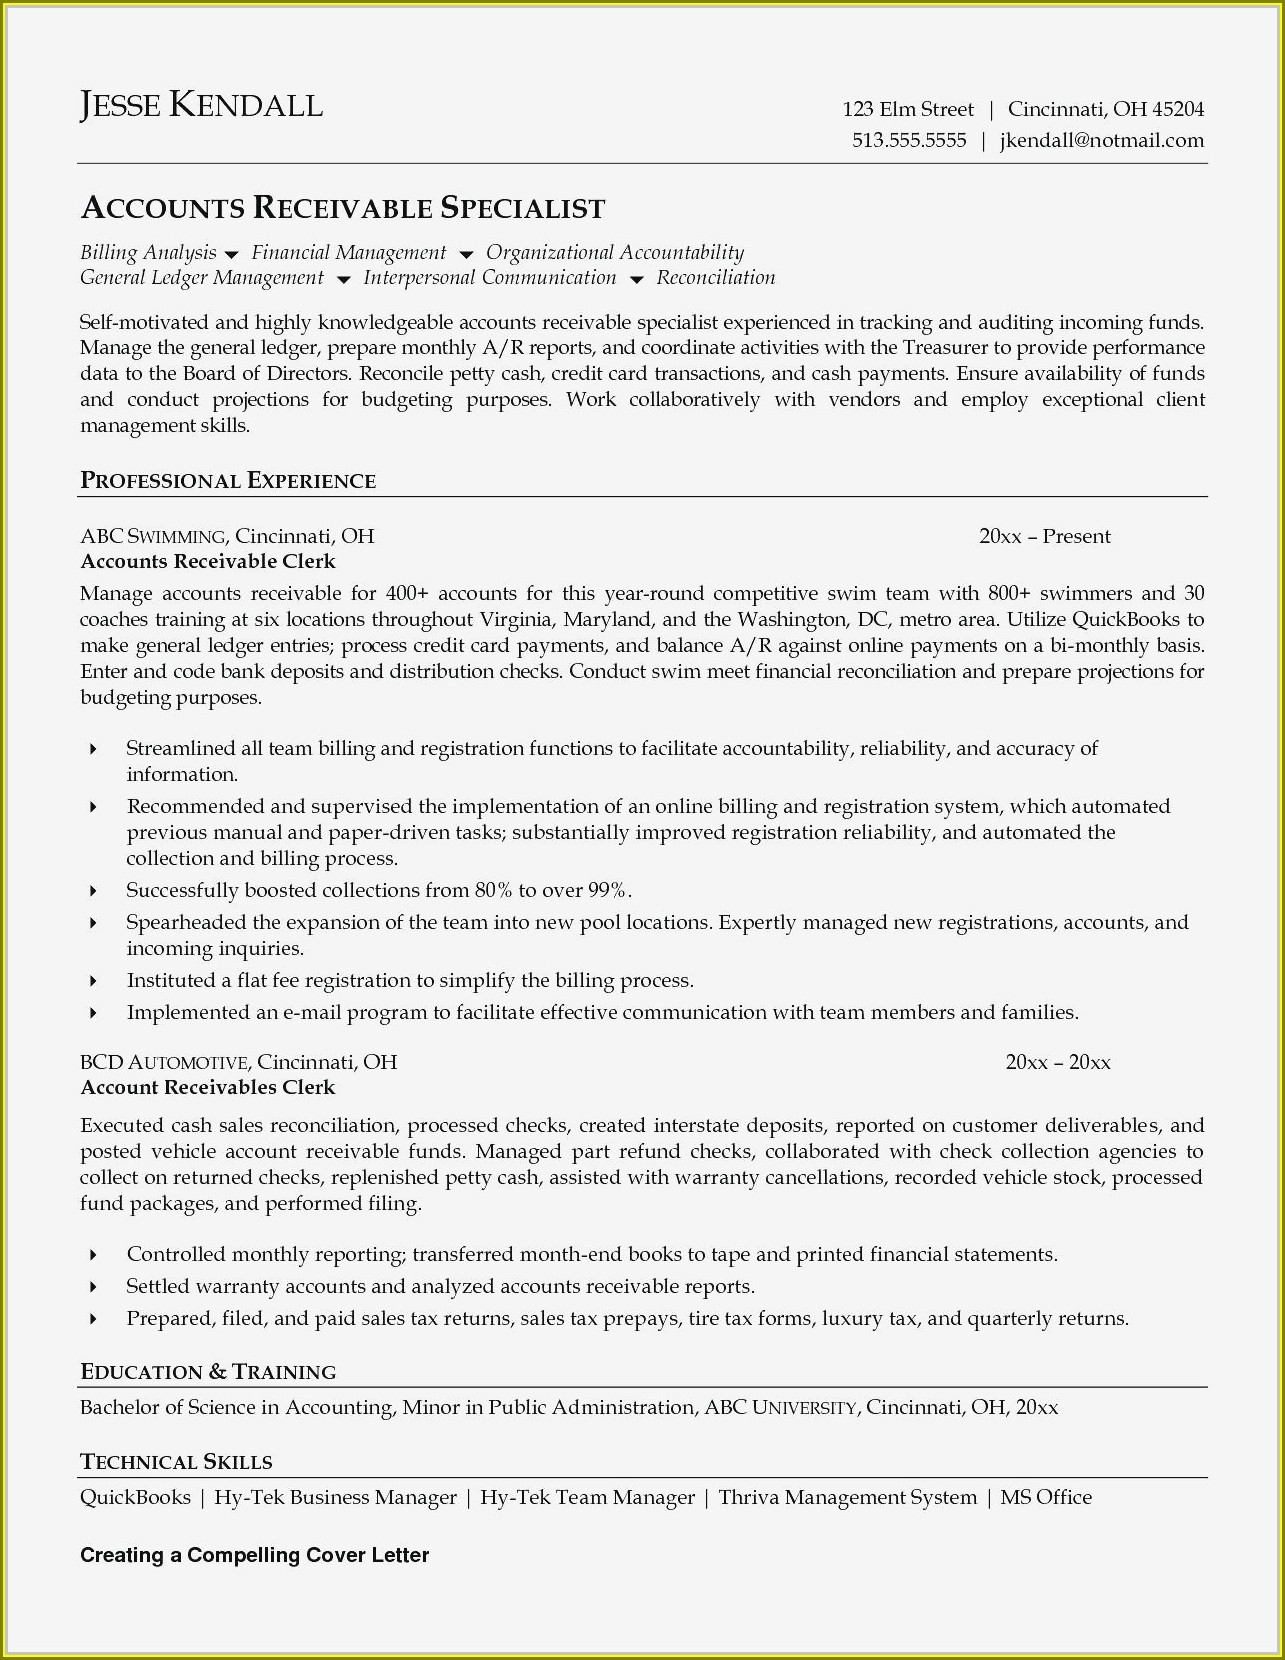 Resume Sample For Accounts Payable Assistant